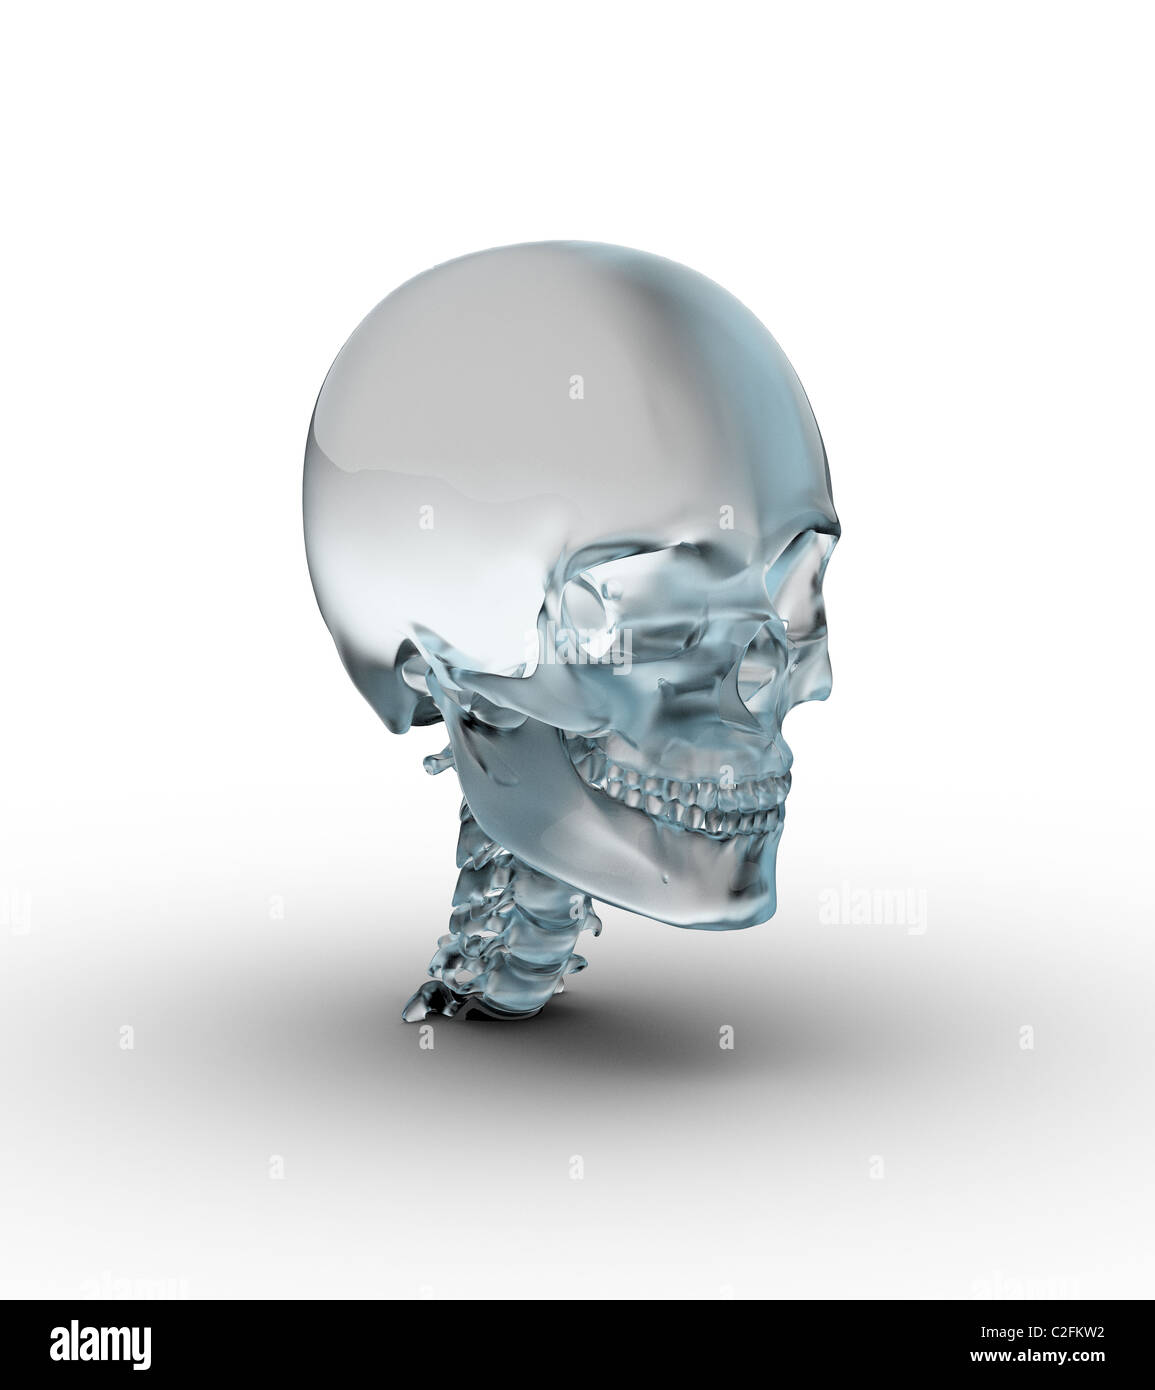 Male skull made of frosted glass. - Stock Image